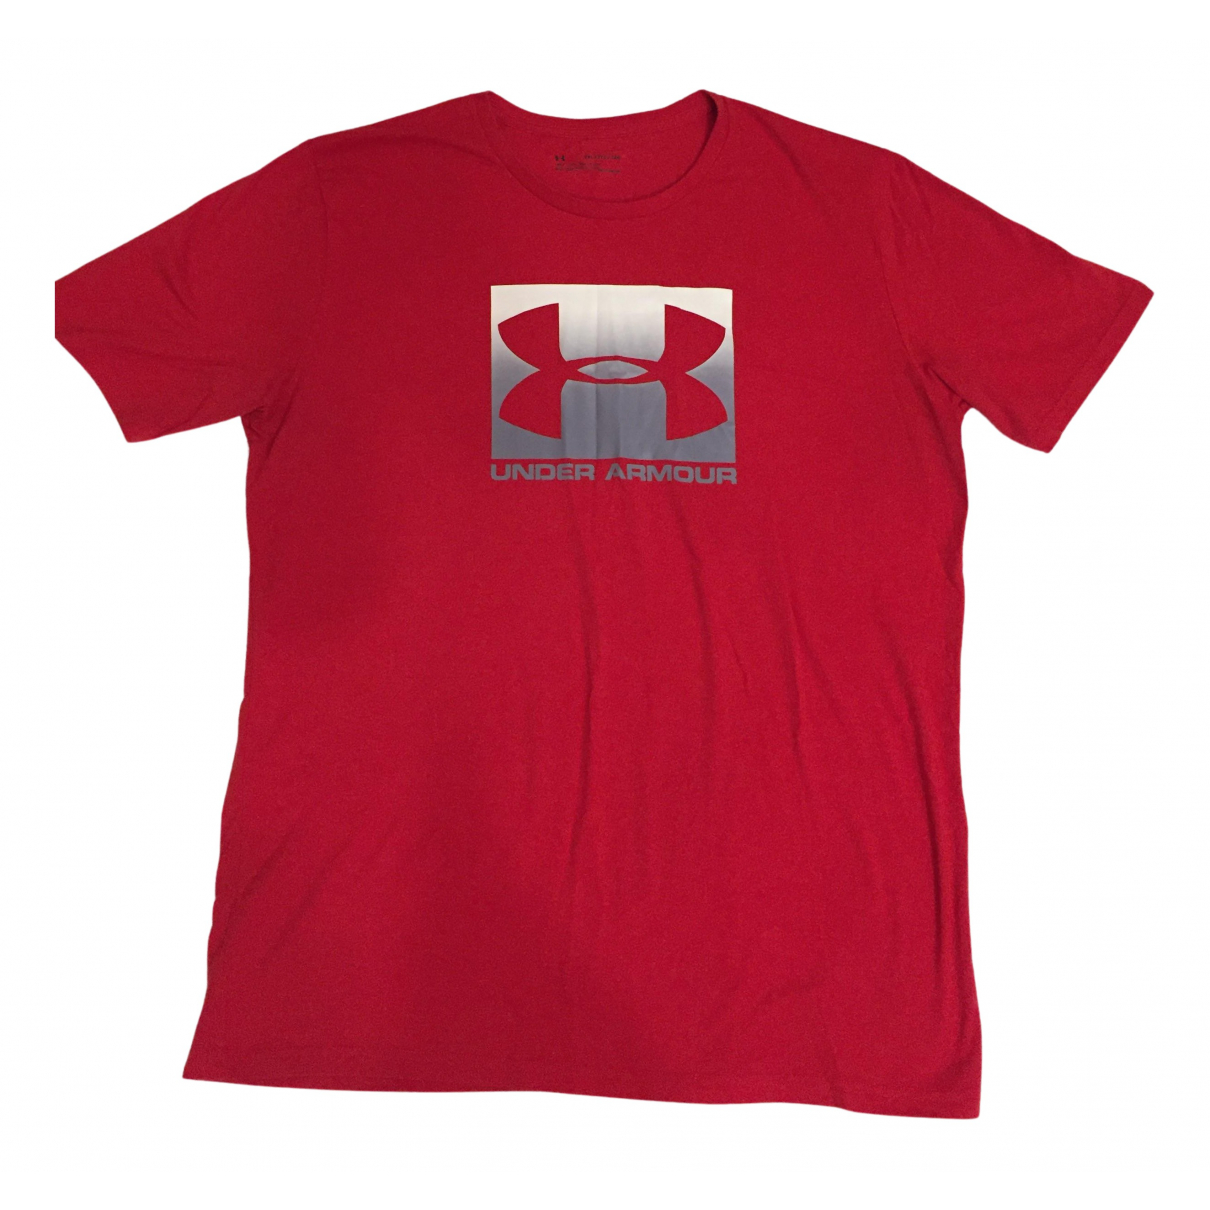 Under Armour N Red Cotton T-shirts for Men XXL International